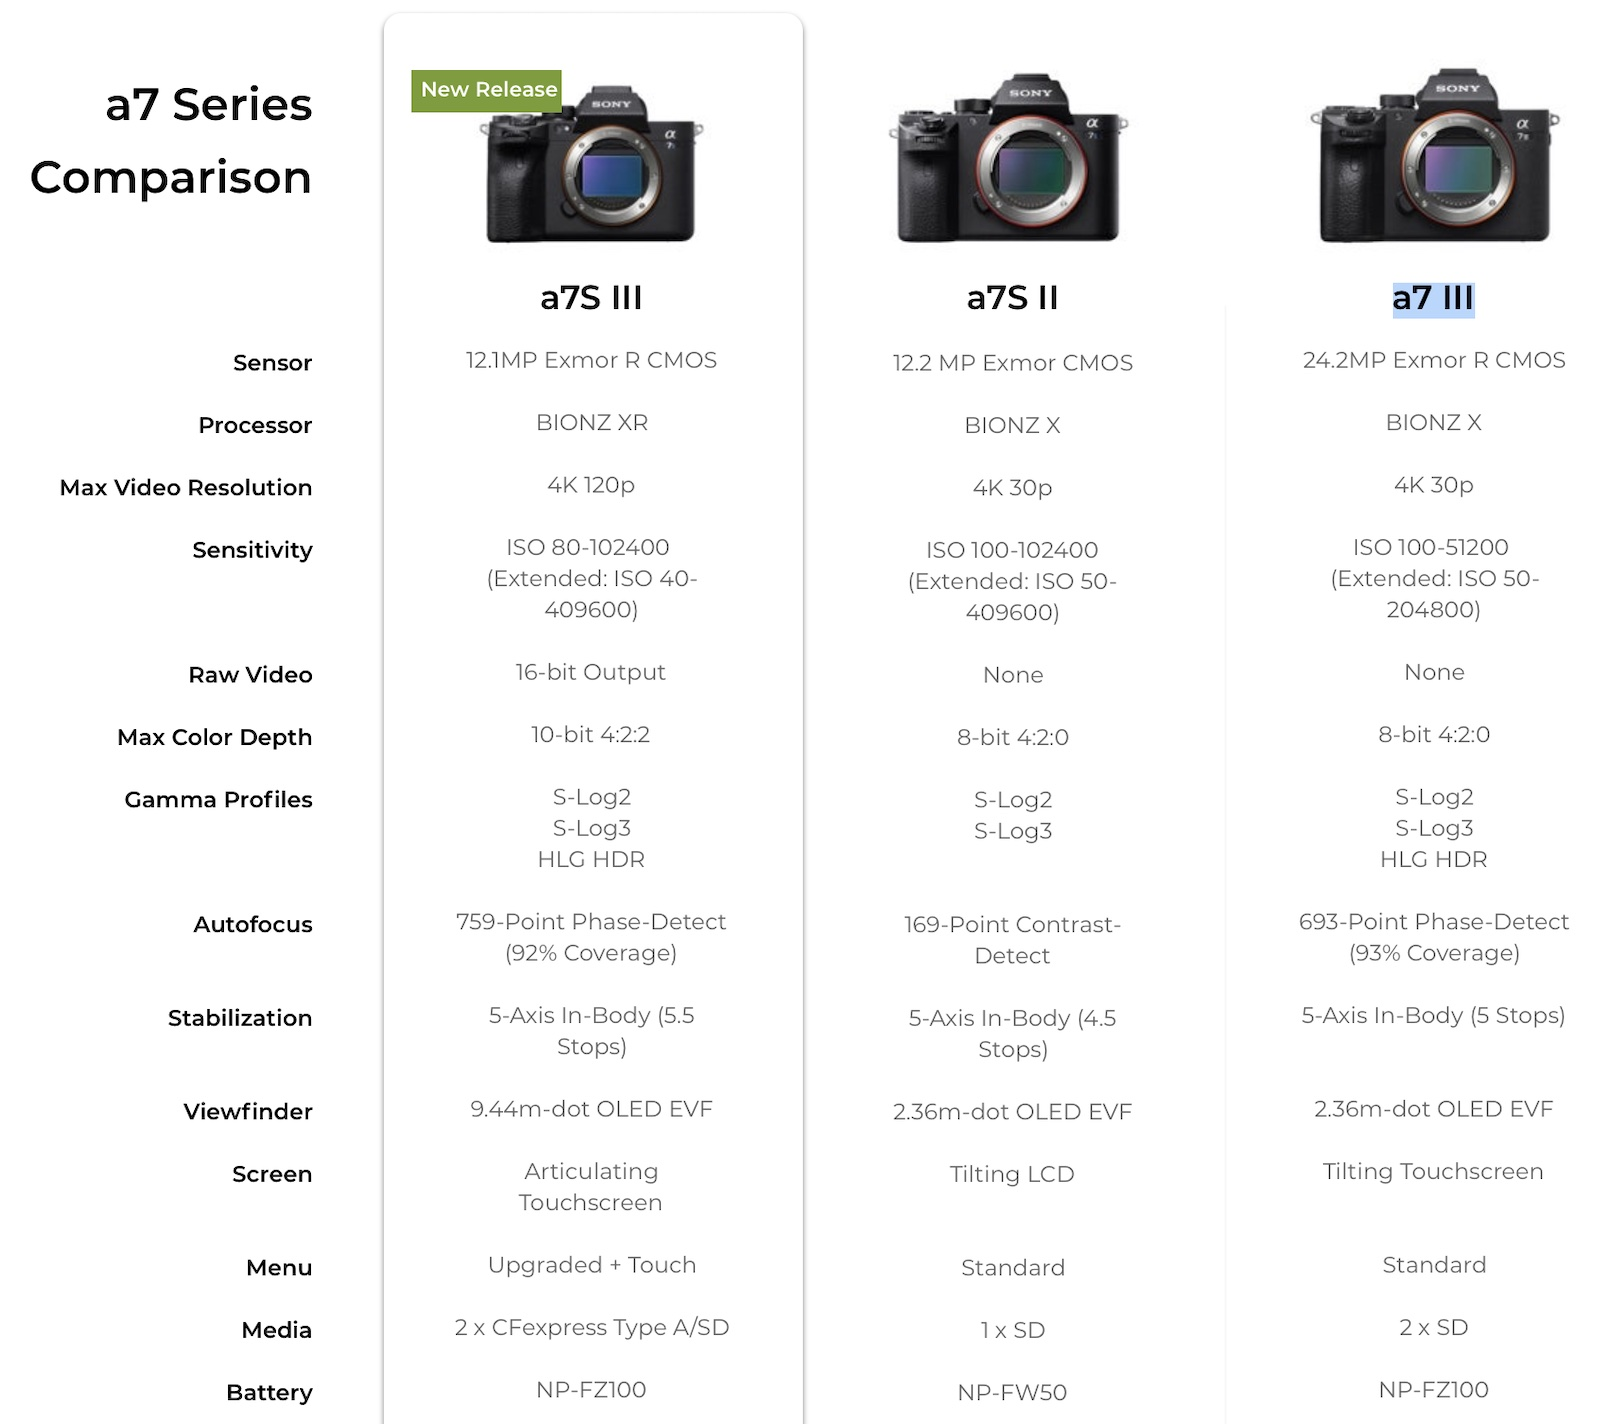 Comparing The New Sony A7s Iii To Other Cameras Photo Rumors